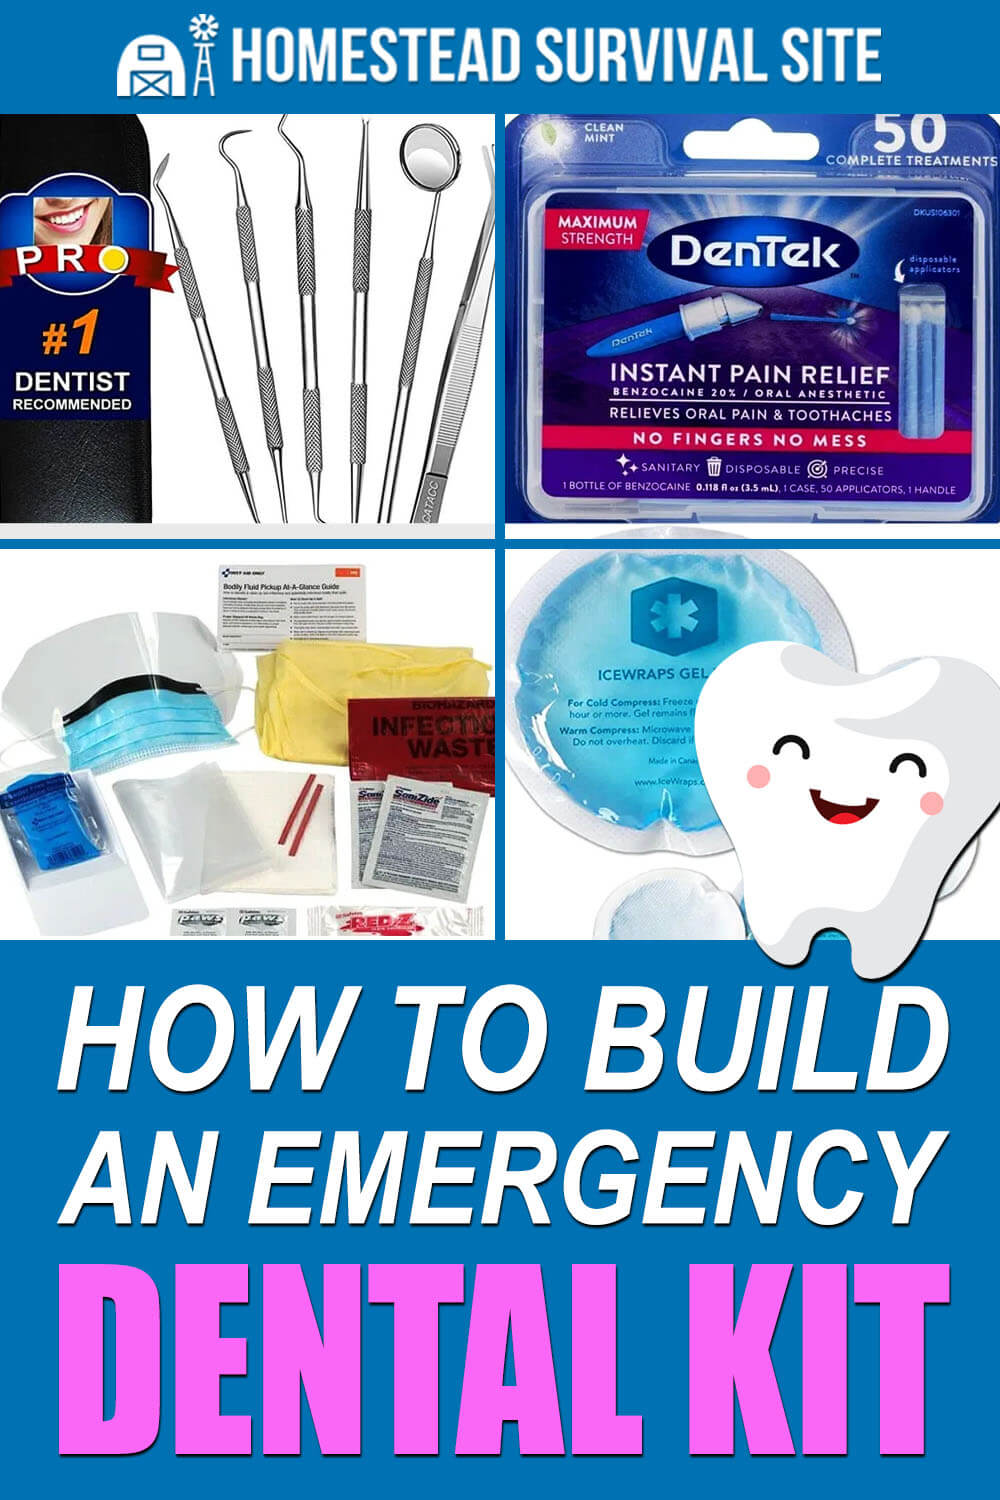 How To Build An Emergency Dental Kit